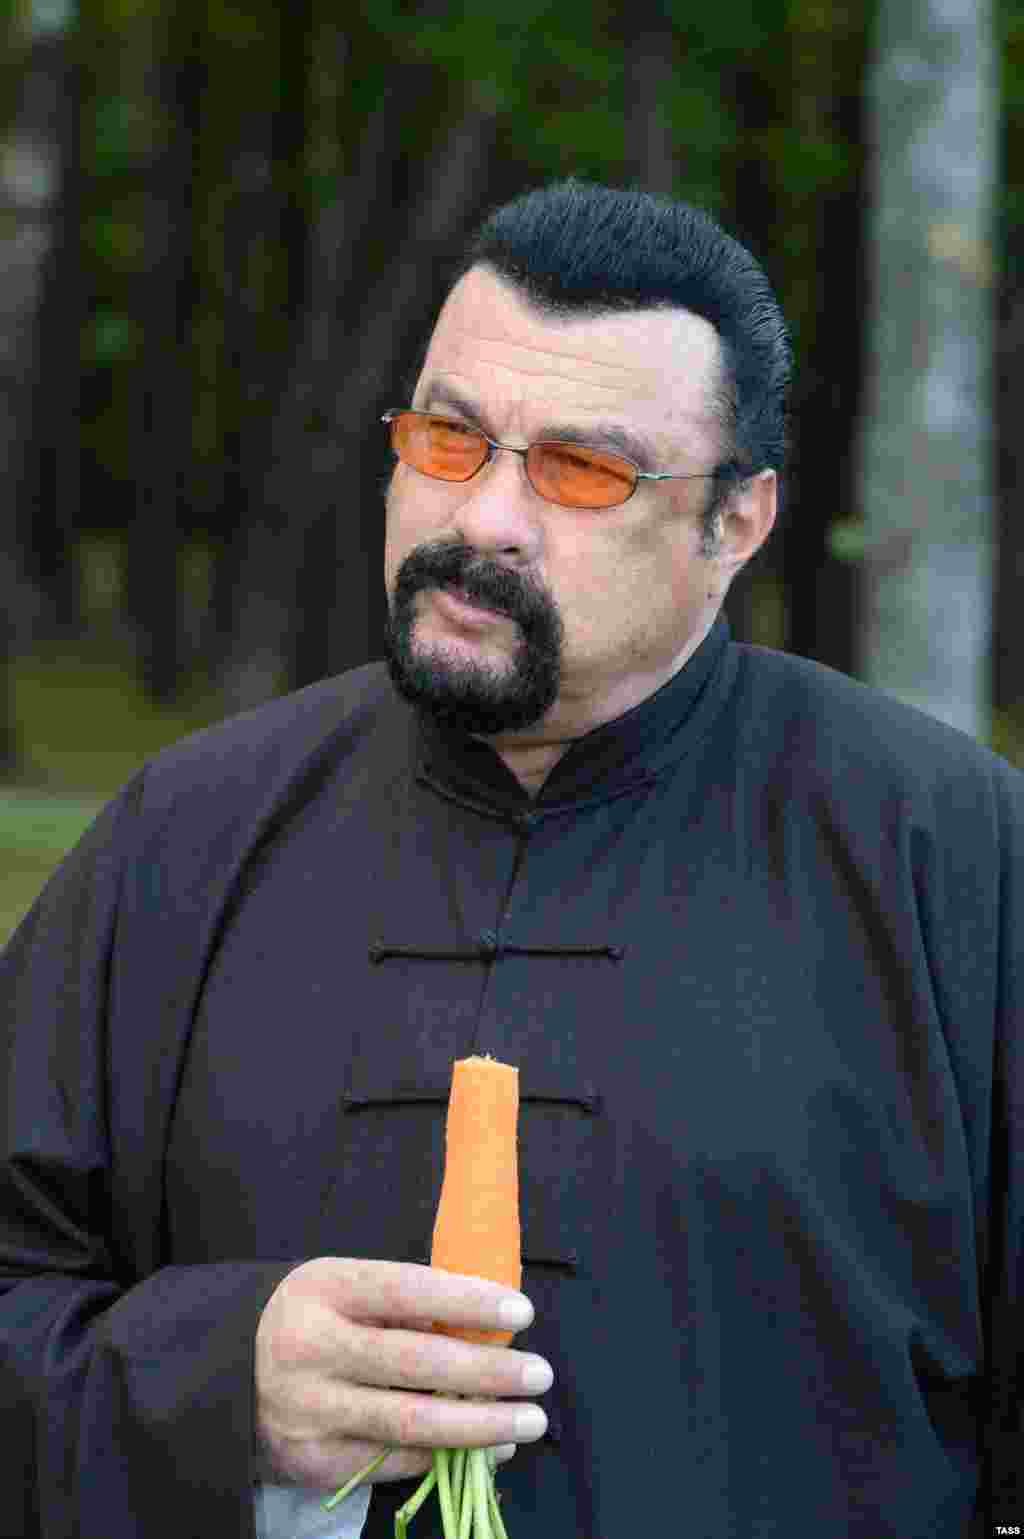 U.S. action star Steven Seagal is seen munching on a homegrown carrot that had been cleaned and peeled for him by Belarusian President Alyaksandr Lukashenka at the president's residence near Minsk. The odd encounter trended heavily on social media. Seagal was in Belarus for talks with a video game developer. (TASS/Andrei Stasevich)